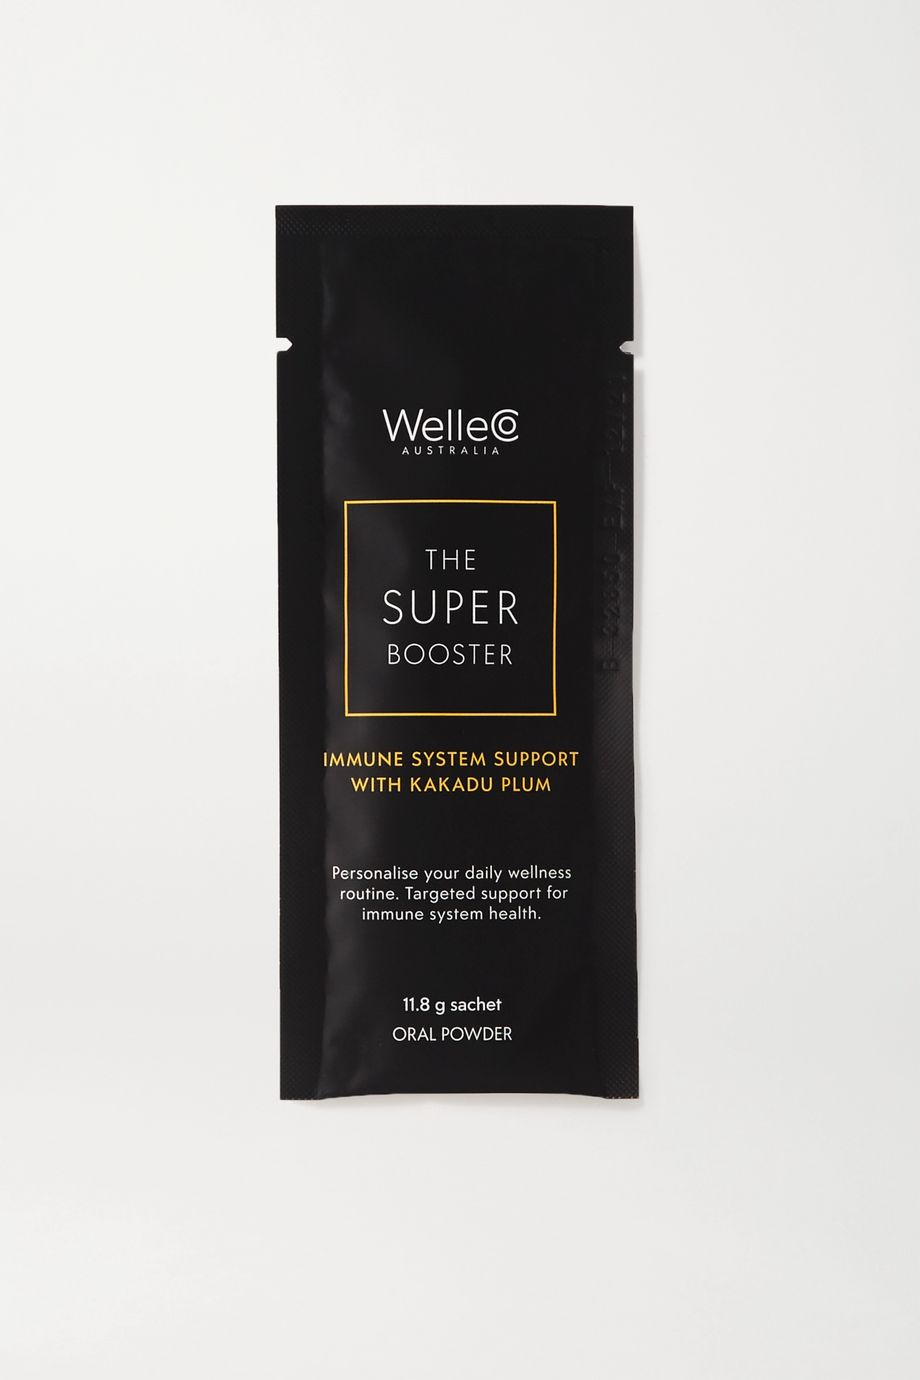 WelleCo The Super Booster - Immune System Support with Kakadu Plum, 14 x 11.8g